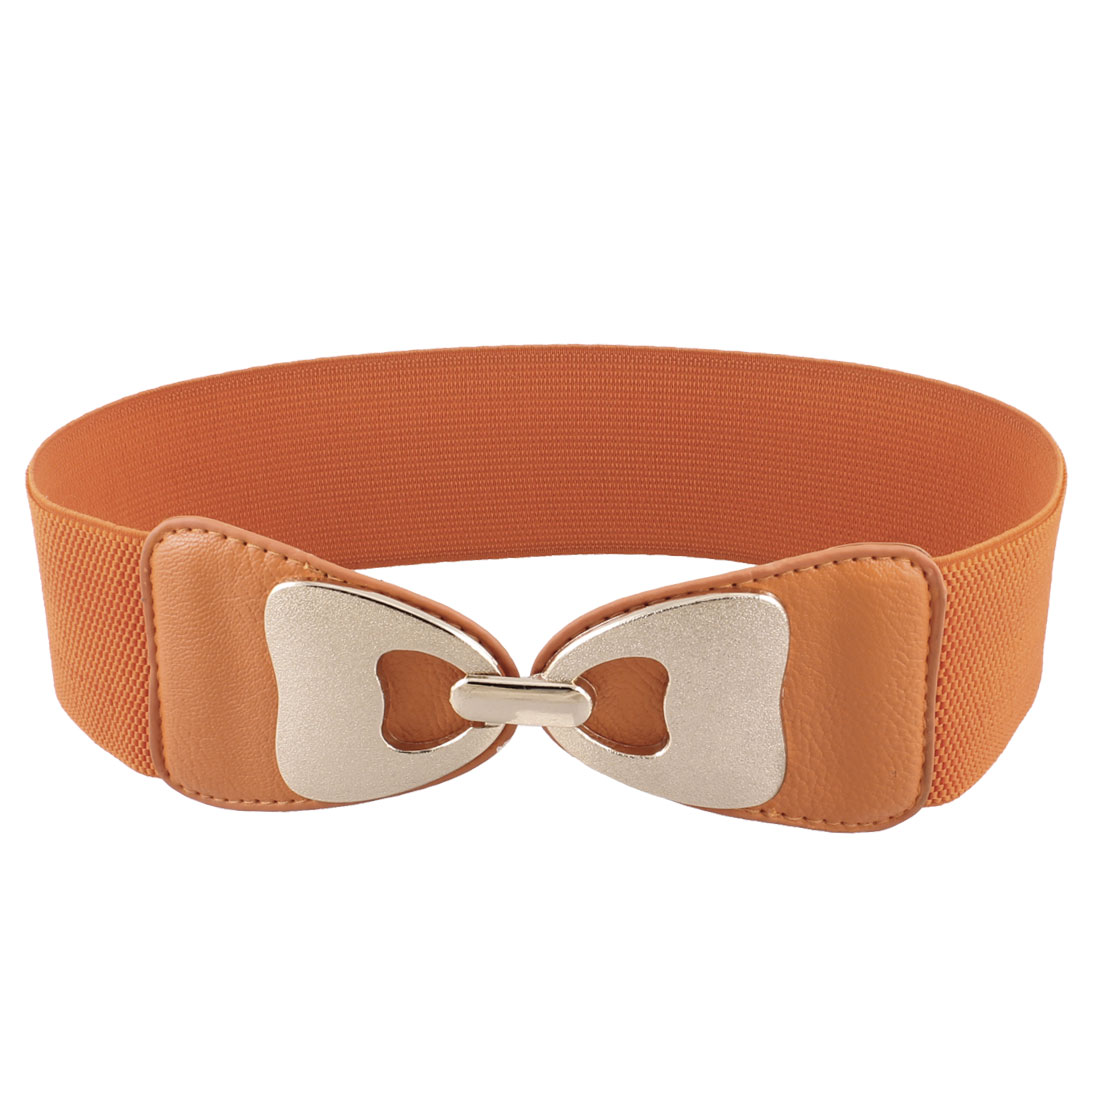 Elastic Band Interlocking Buckle 6cm Width Waist Belt Orange for Ladies